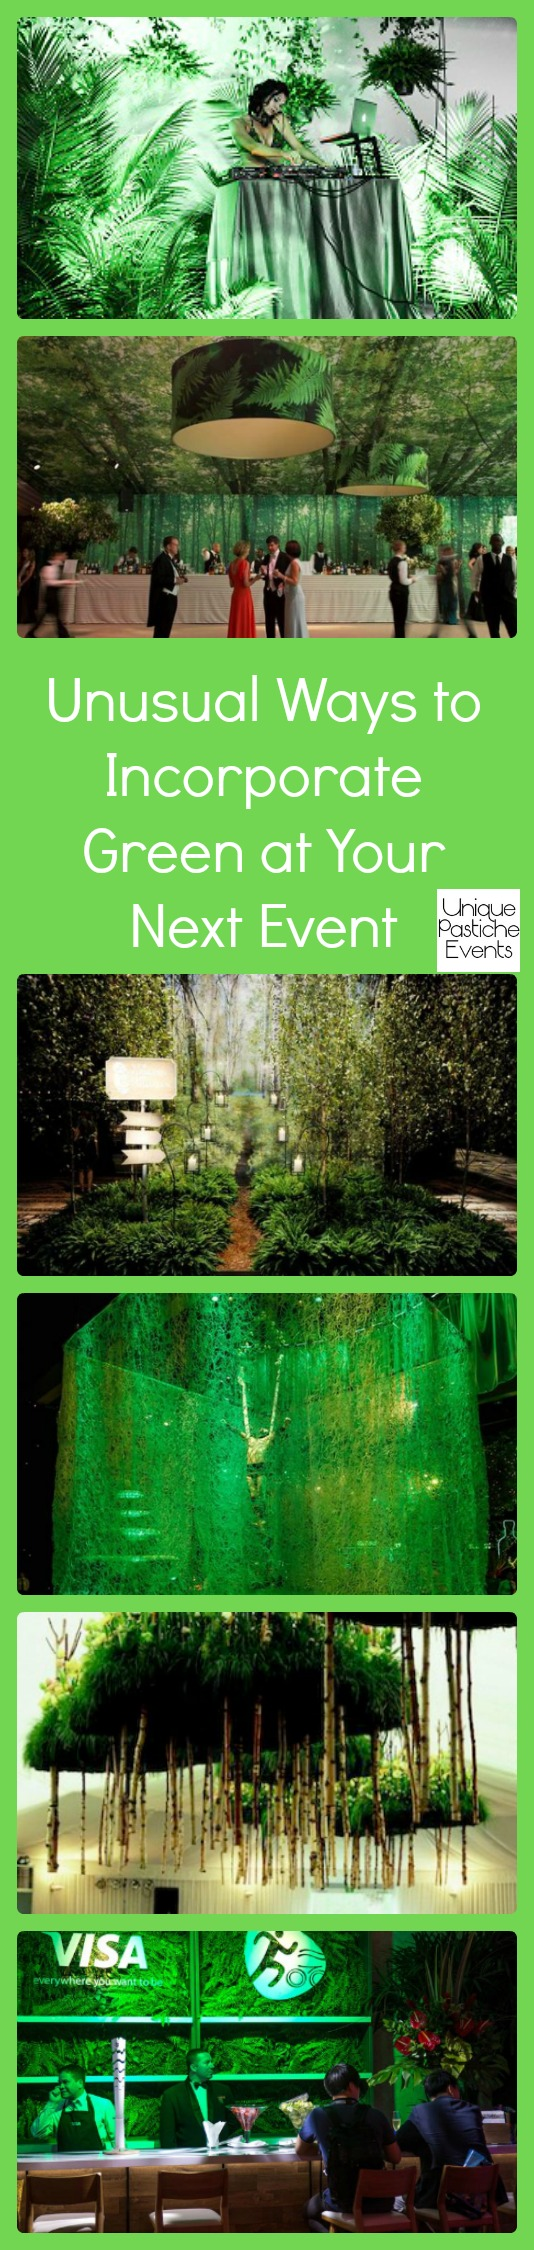 Unusual Ways to Incorporate Green at Your Next Event